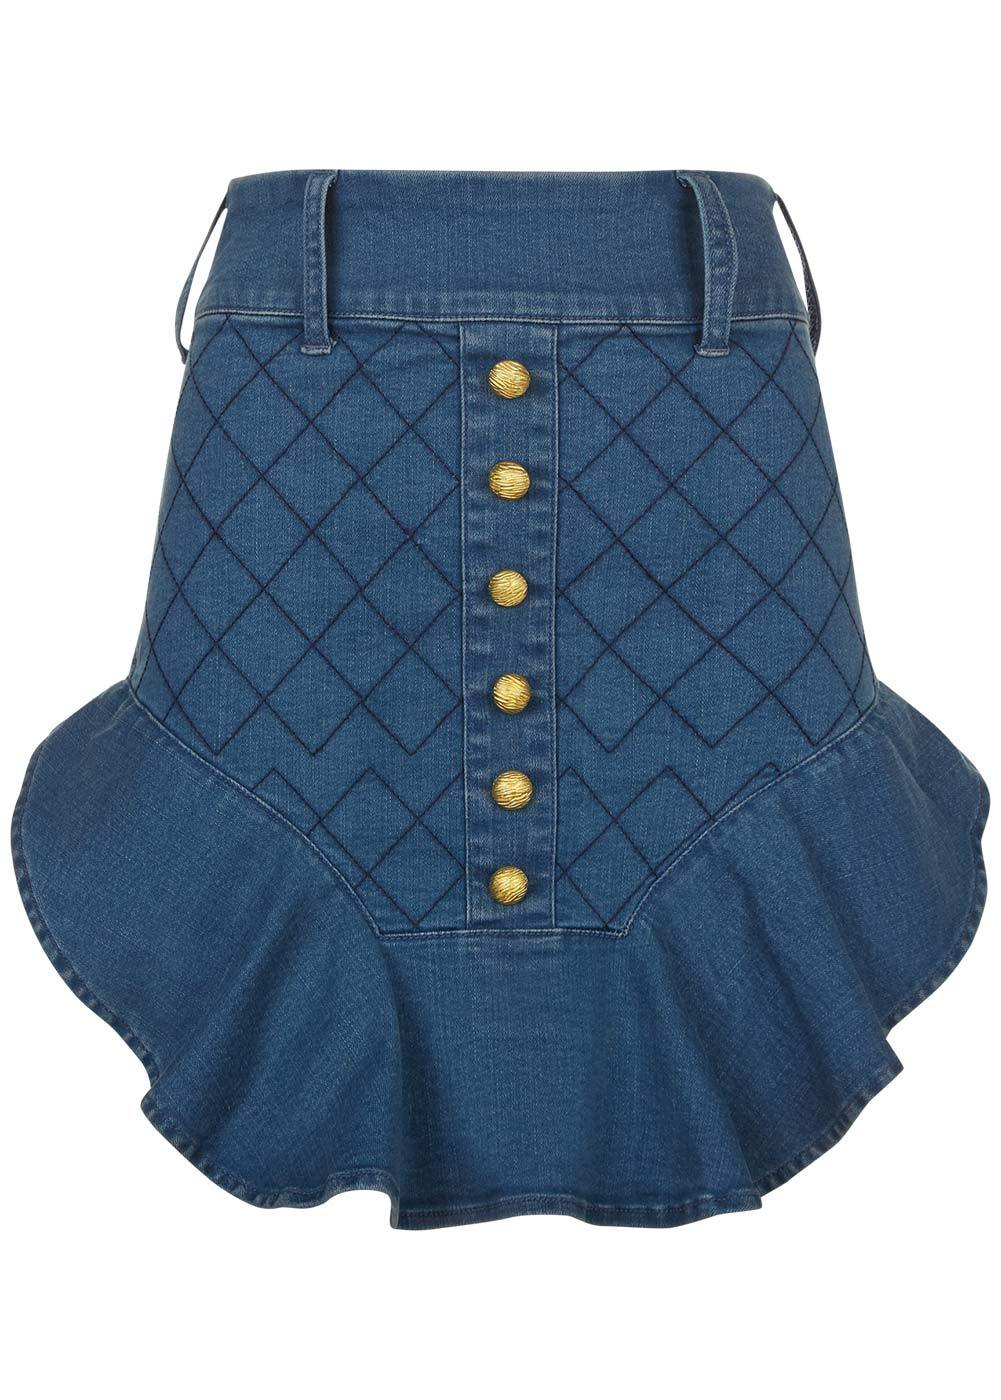 Girls Blue Denim Miniskirt